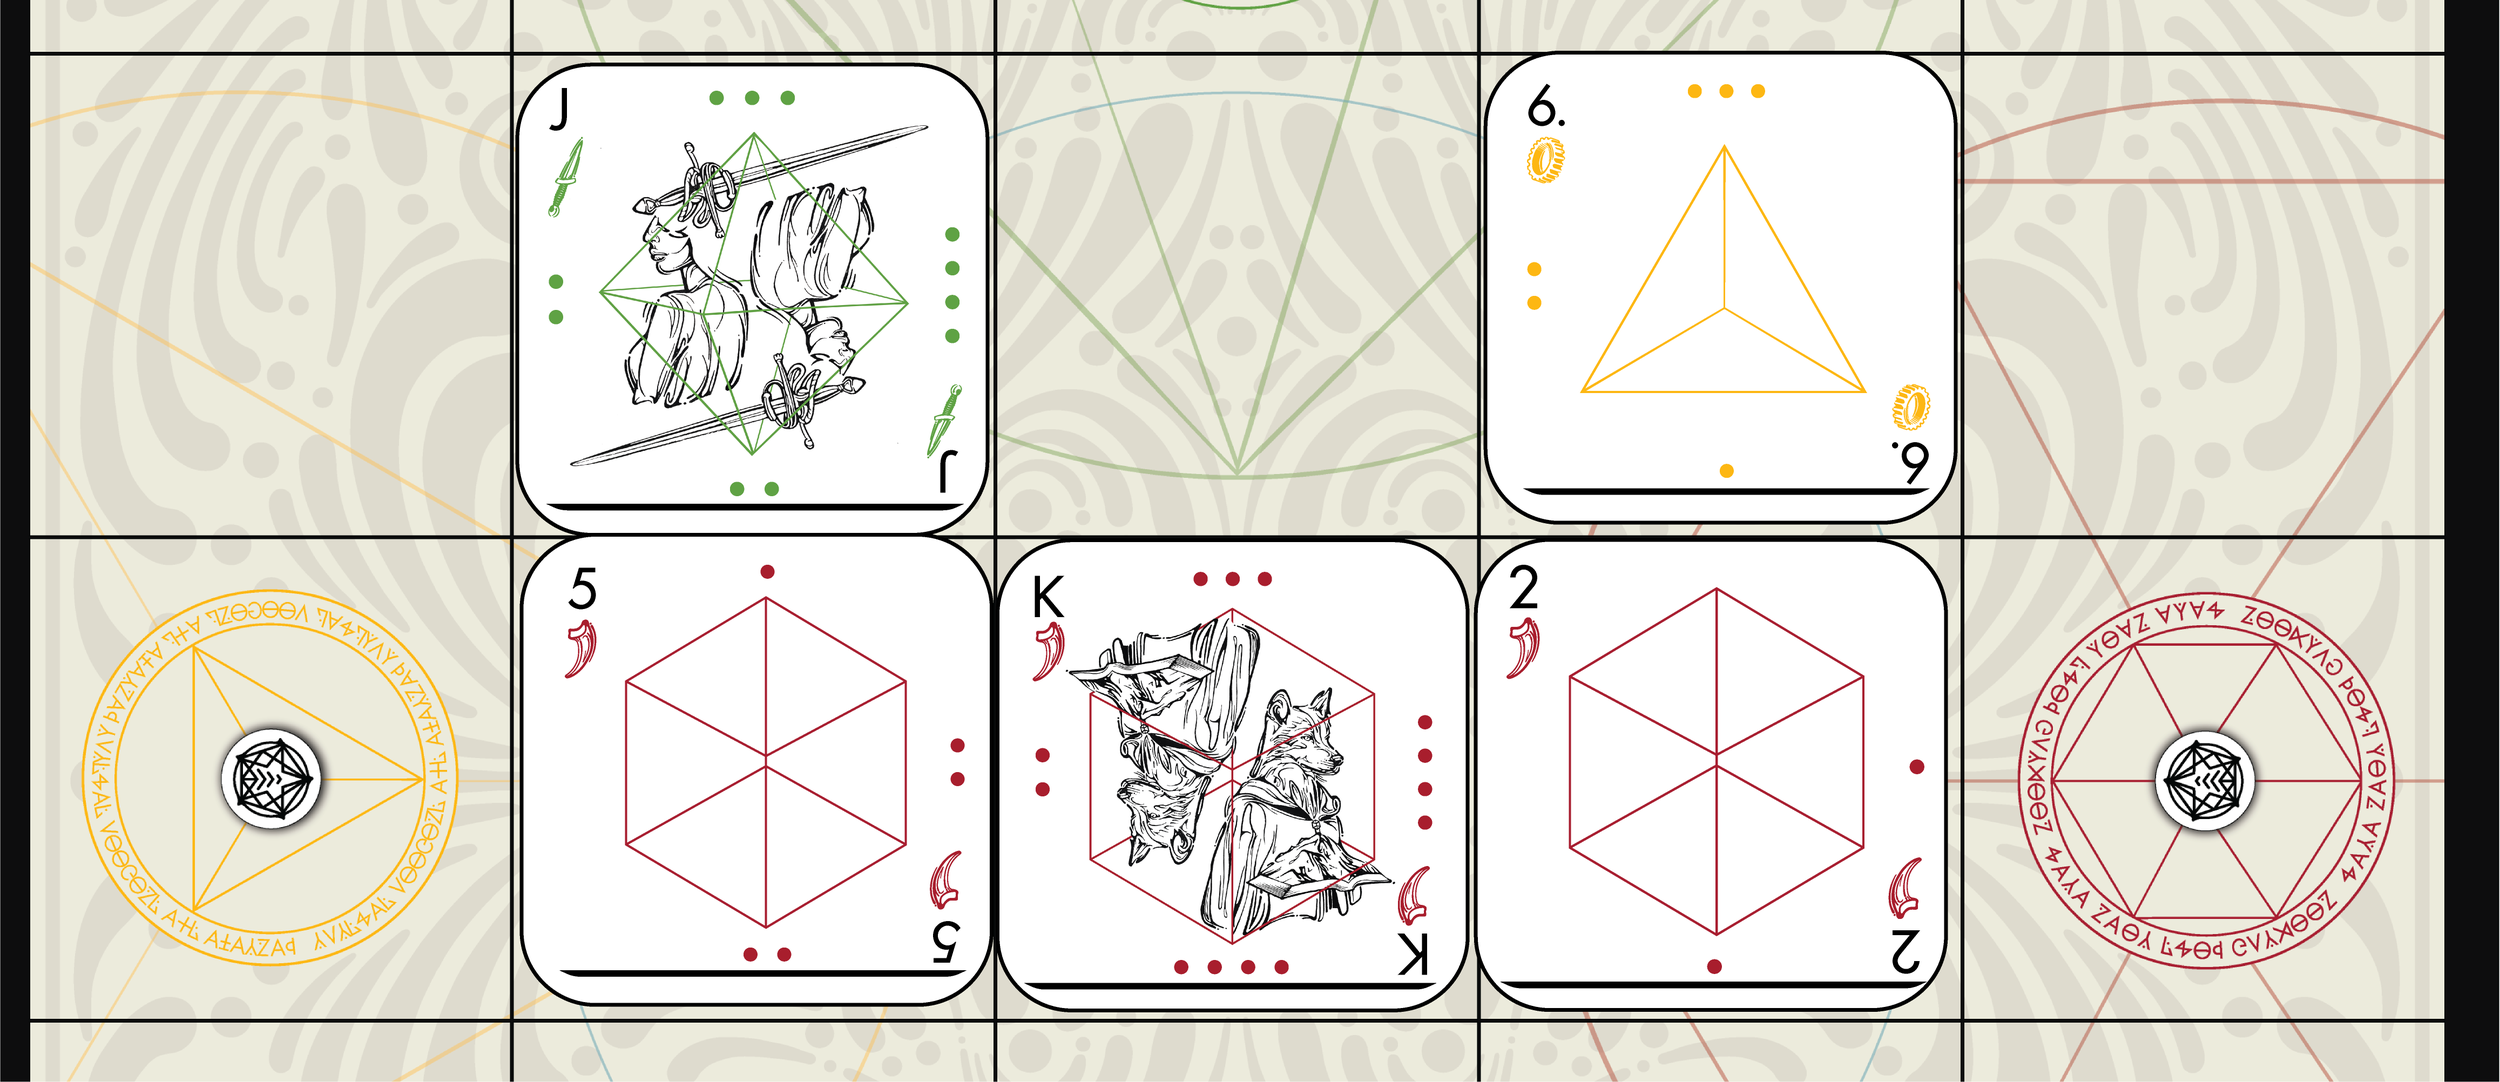 Here, the South player has re-summoned their selected cards in a valid chain; the 6 of Gears and the Jack of Blades would not have been able to use the King of Claws as a summoning base due to their lower face value and different suits.